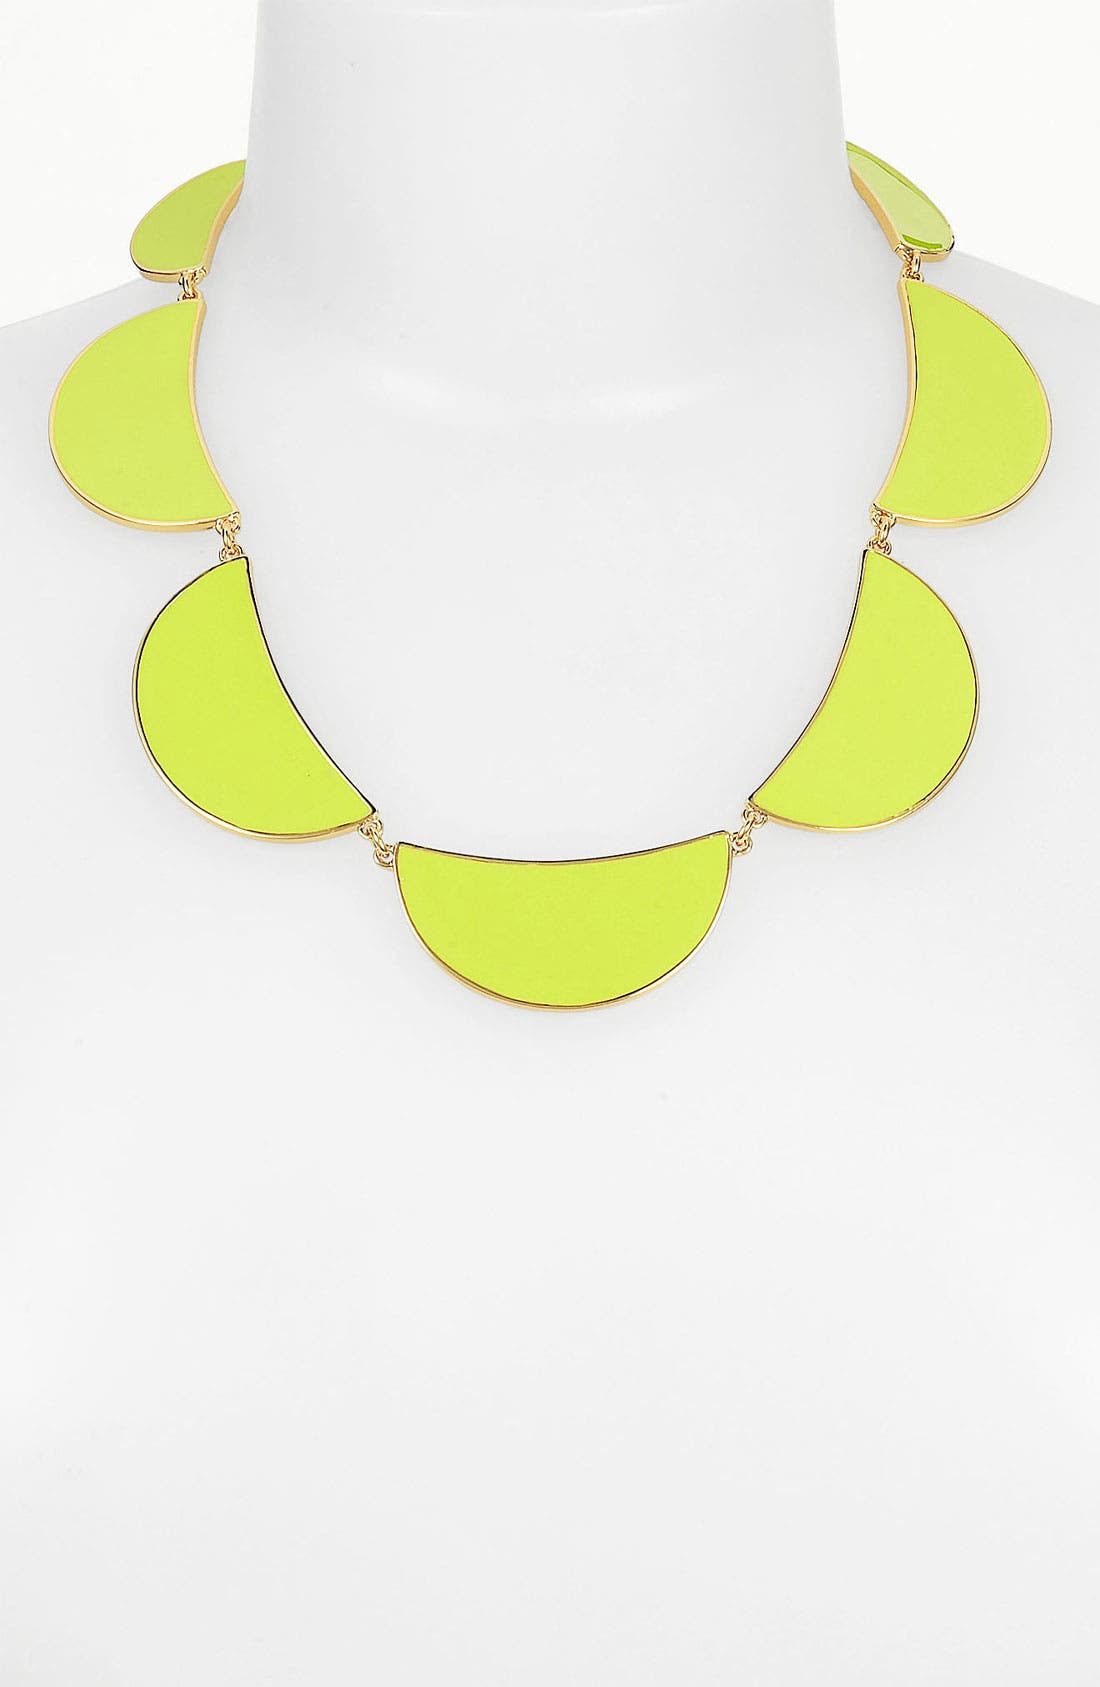 Main Image - kate spade new york 'scallop' frontal necklace